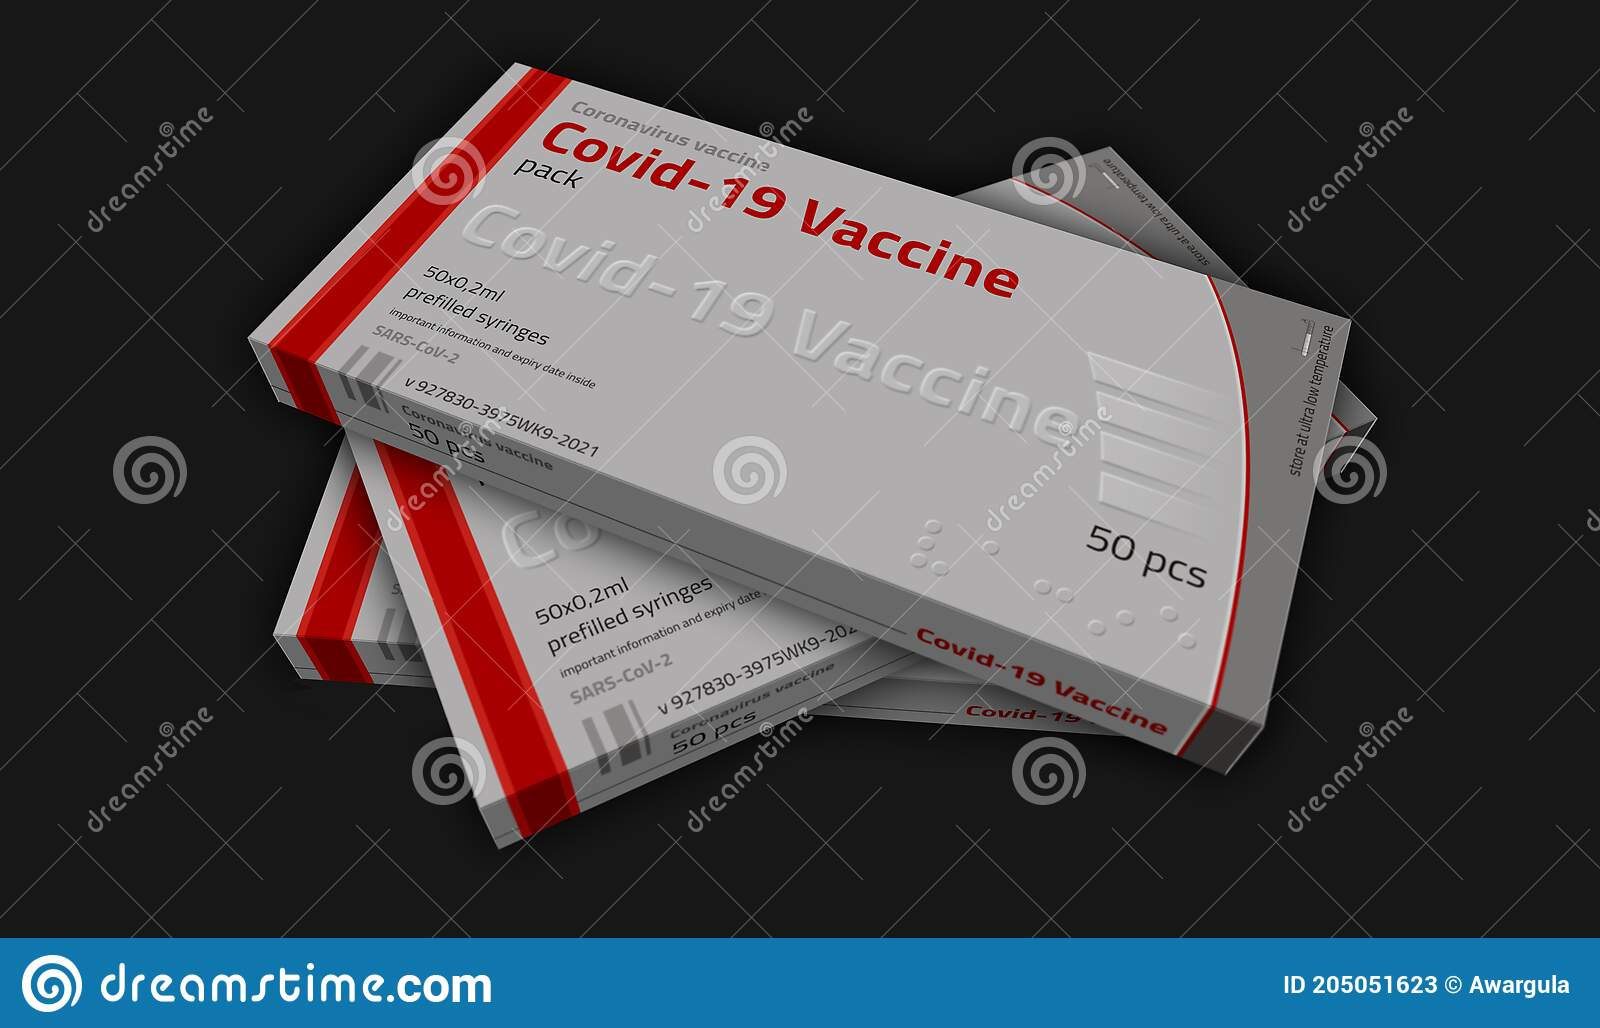 covid-vaccine-pack-production-line-d-illustration-coronavirus-sars-cov-vaccination-delivery-supply-medicine-doses-box-abstract-205051623.jpg?profile=RESIZE_400x